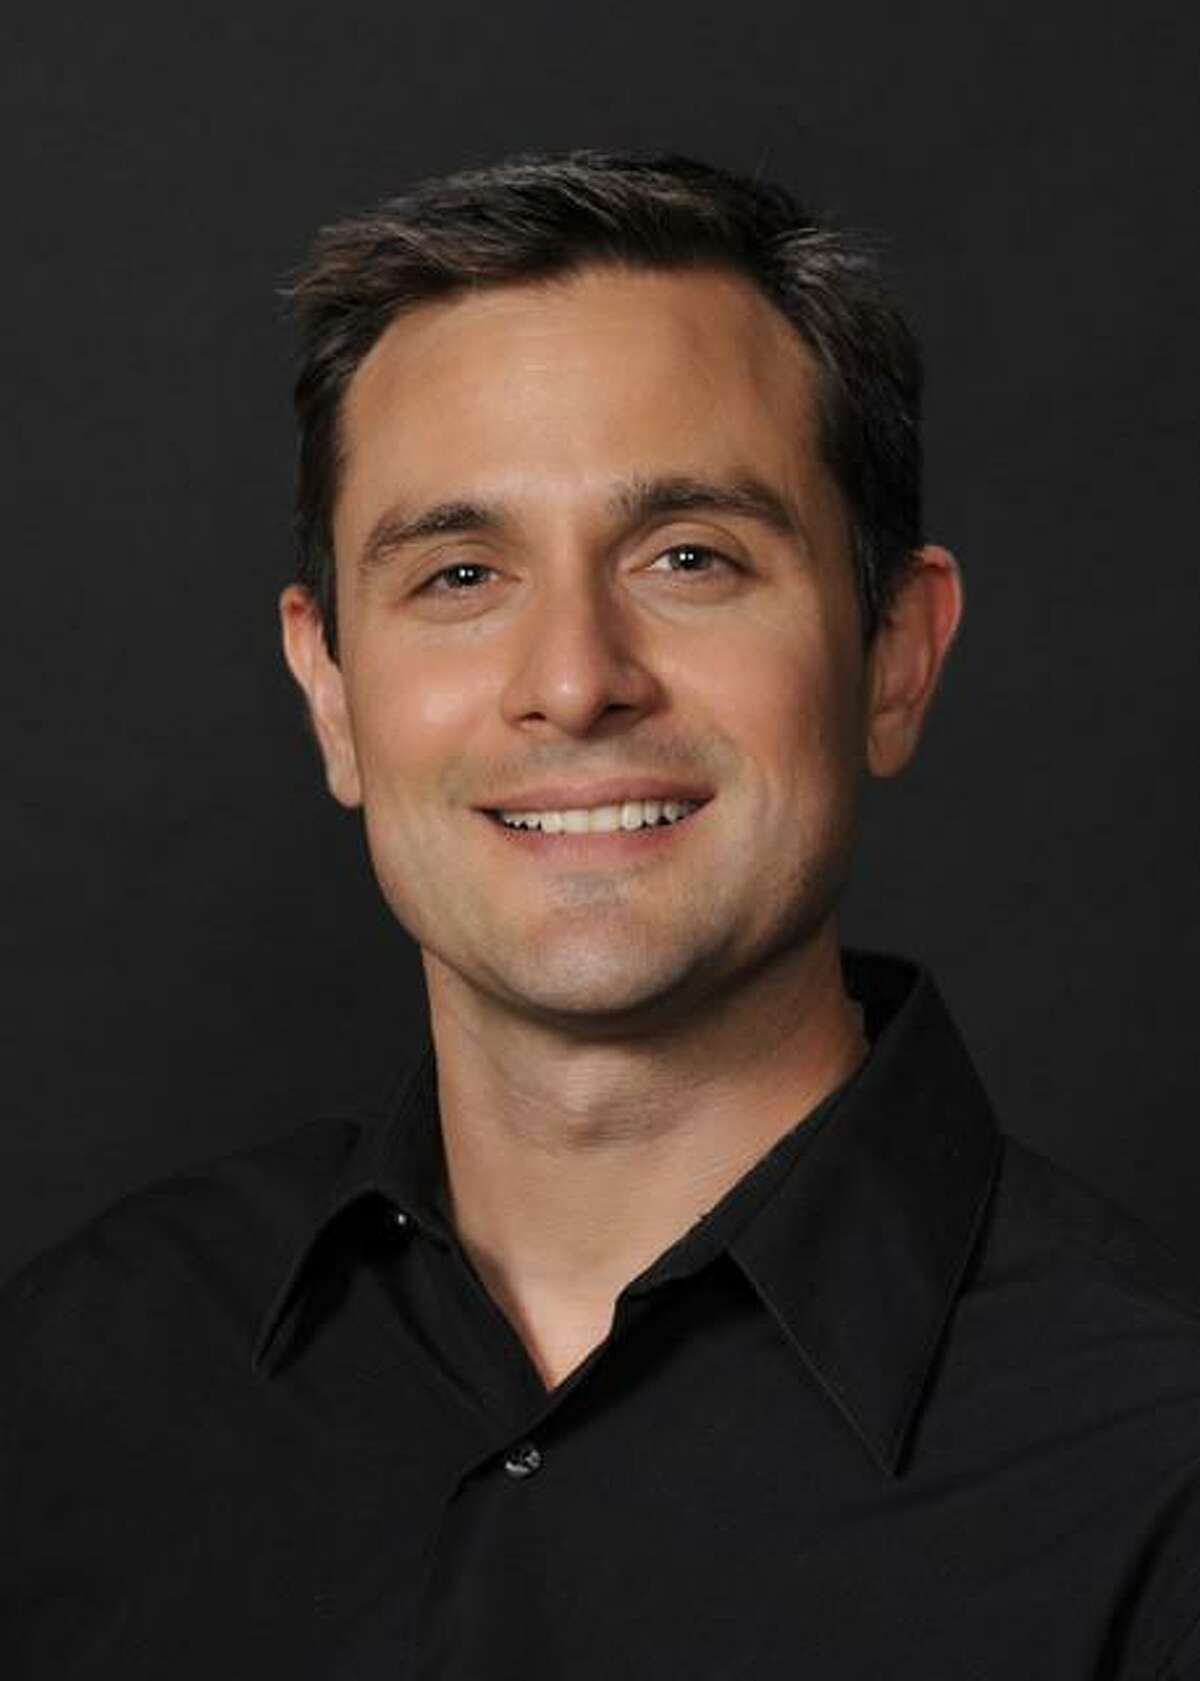 The Woodlands Chorale and its board of directors have selected Dr. Mark Marotto as the group's new Artistic Director.